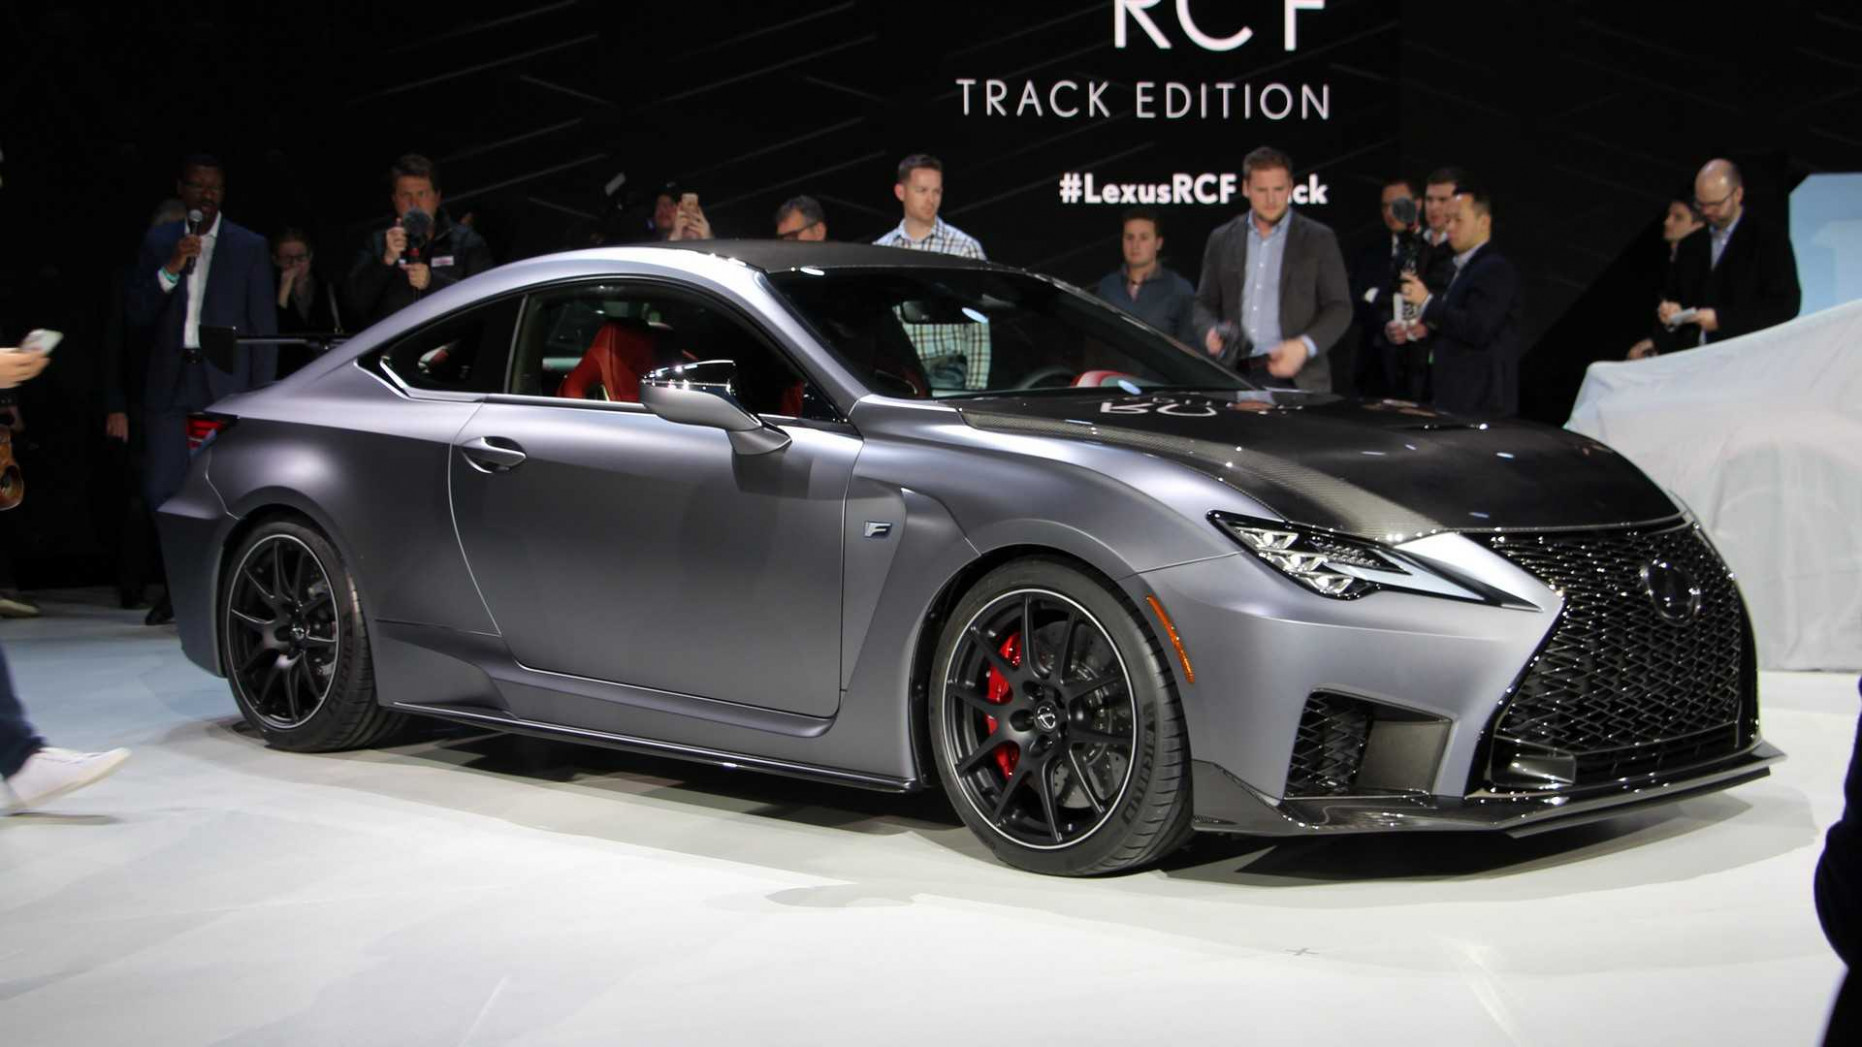 6 Lexus RC F Track Edition Debuts In Detroit [UPDATE]